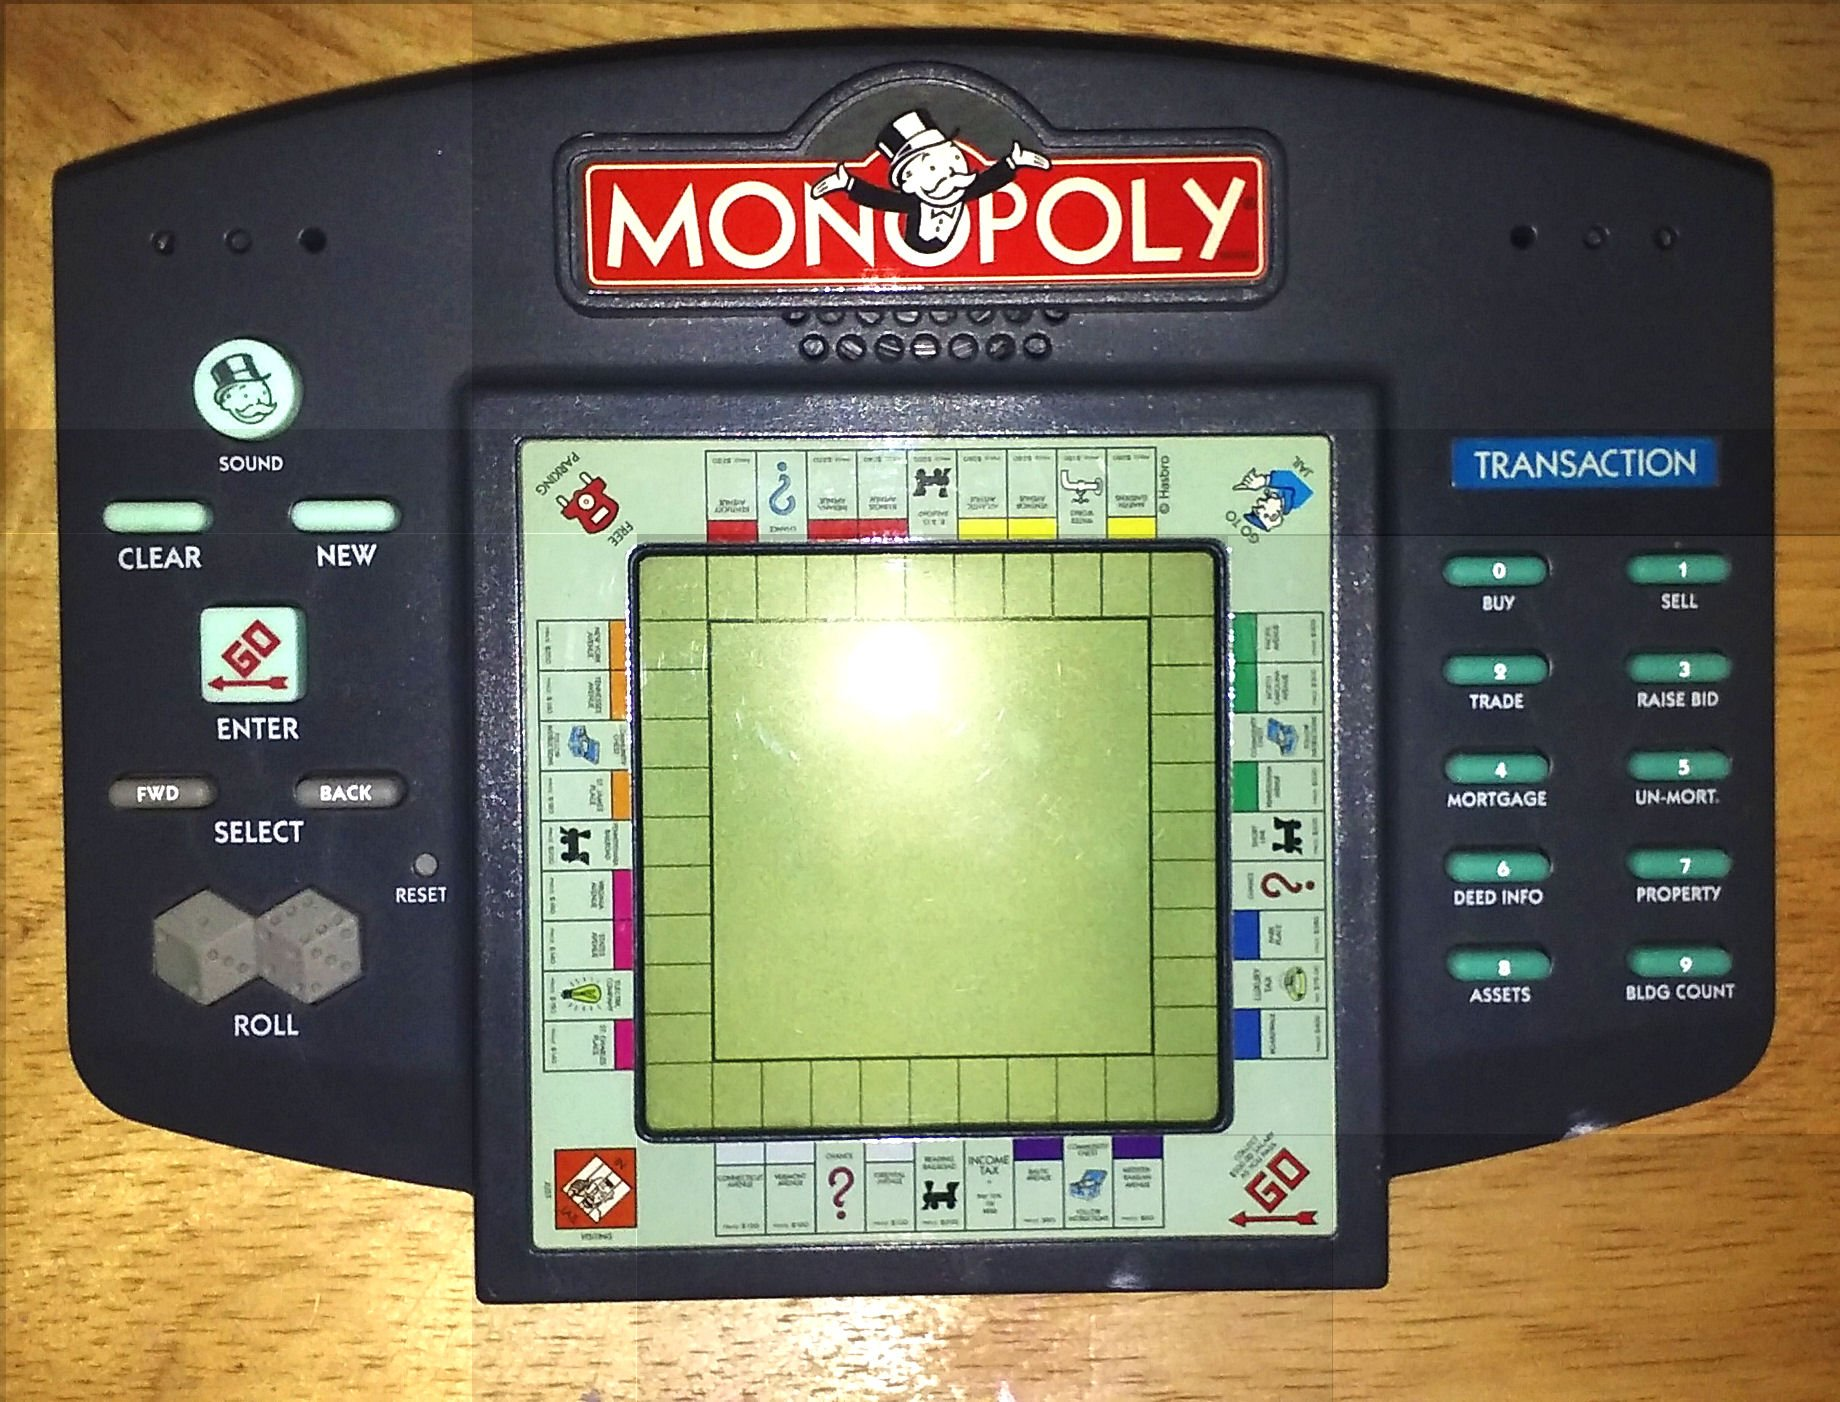 Talking Monopoly Electronic Hand Held LCD Game: Amazon.es: Hasbro: Libros